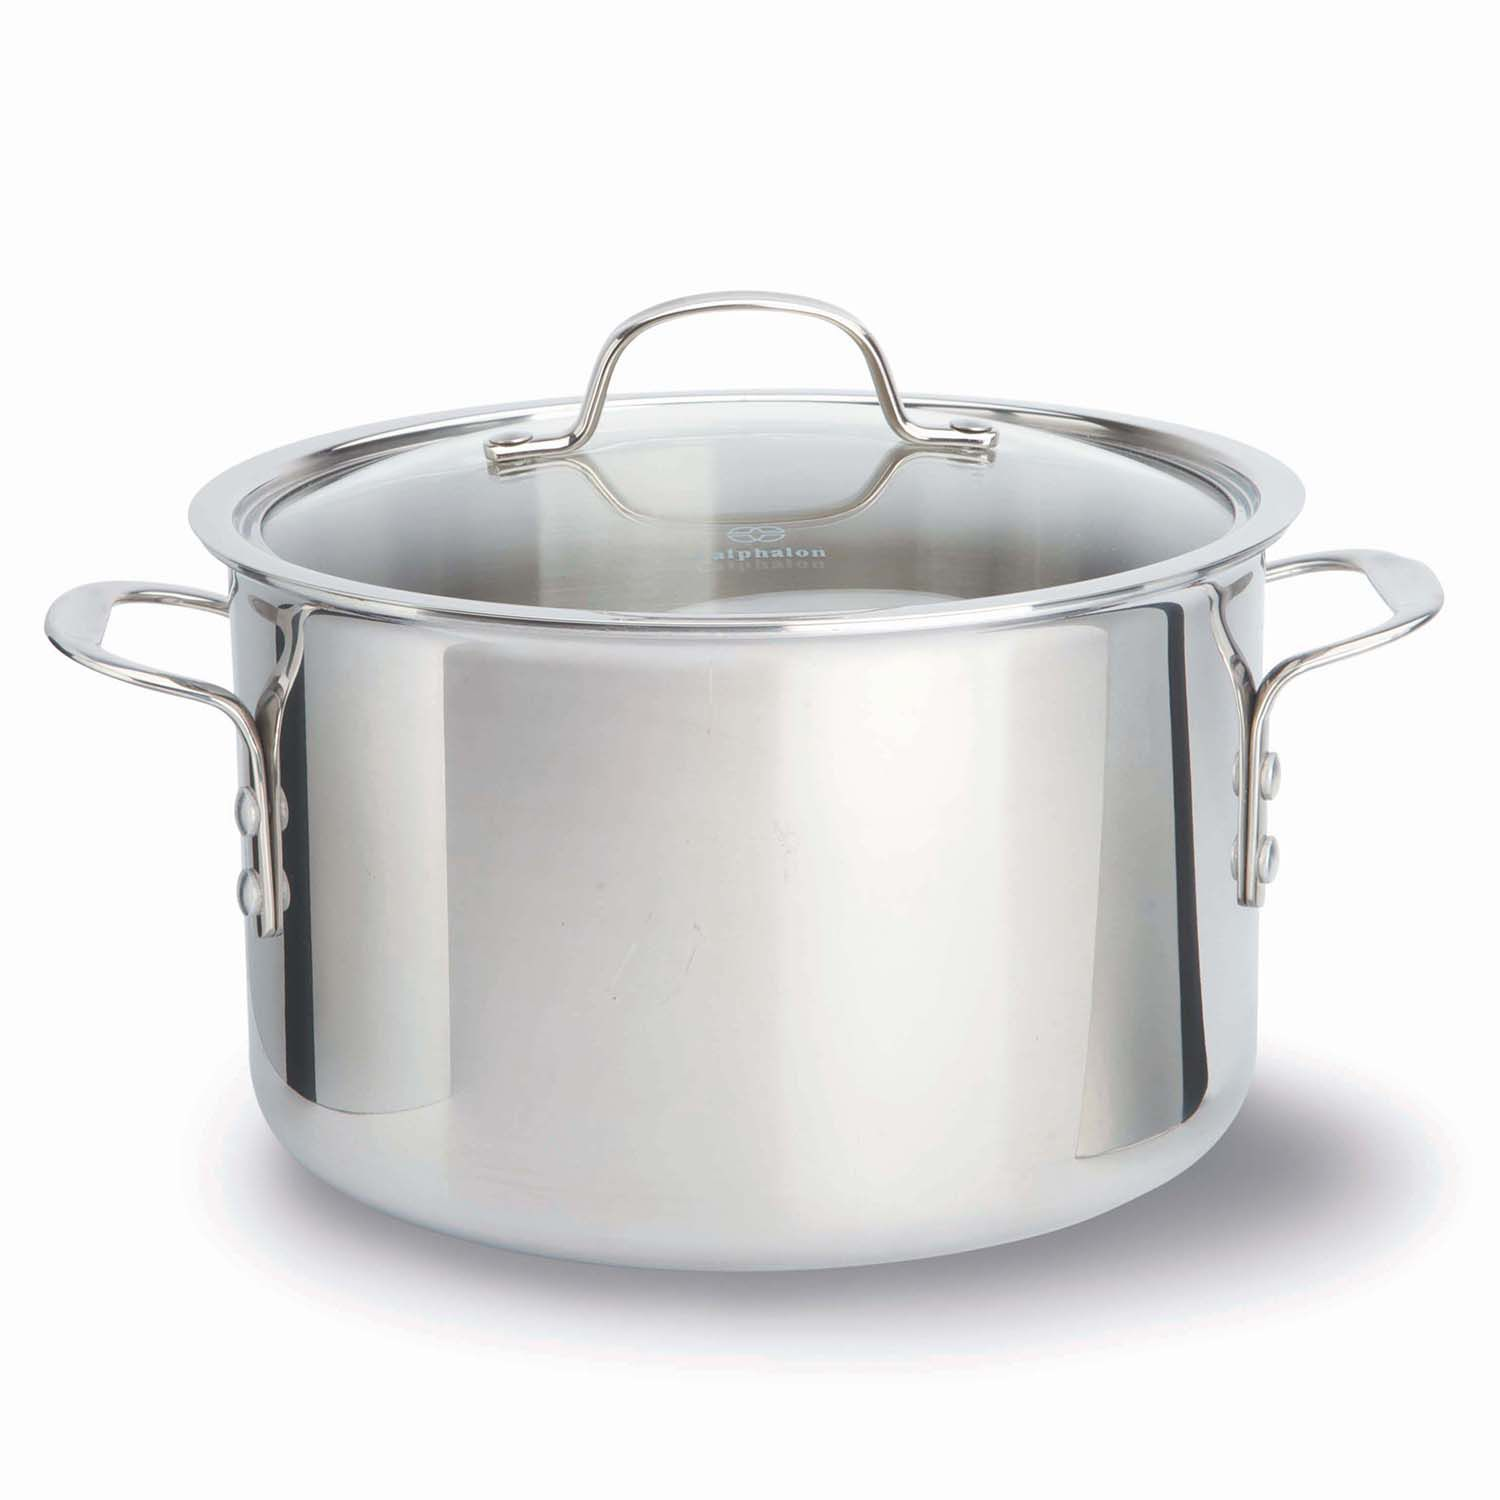 calphalon triply stainless steel 8qt covered stockpot